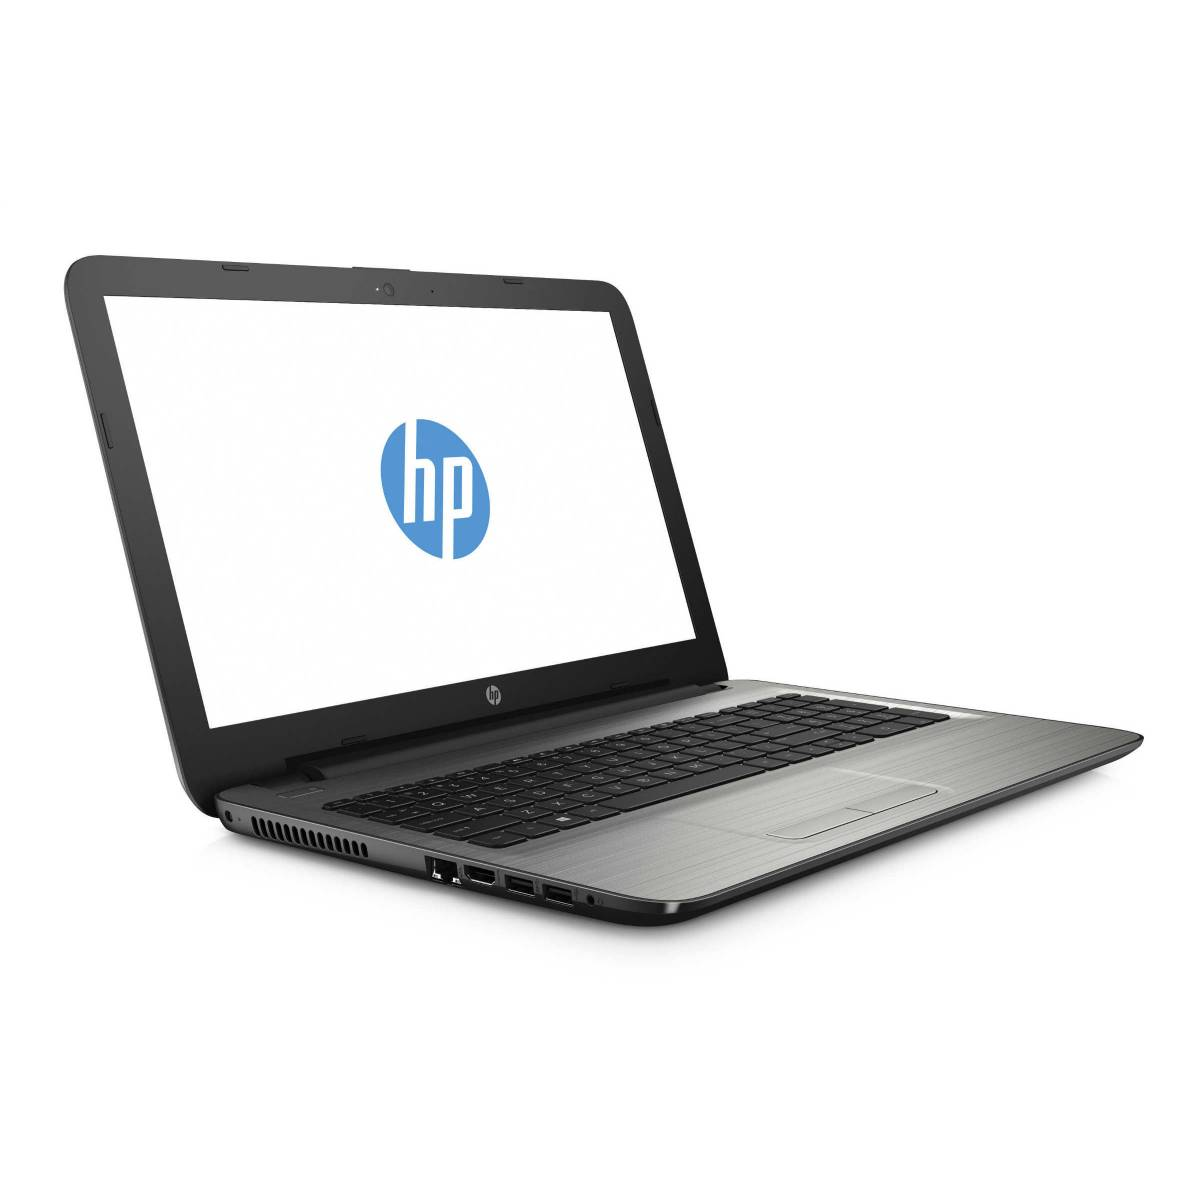 hp 15-ba010nt amd a10-9600p 2.4ghz-8gb-1tb hdd-15.6 -4gb-w10 notebook 261902592